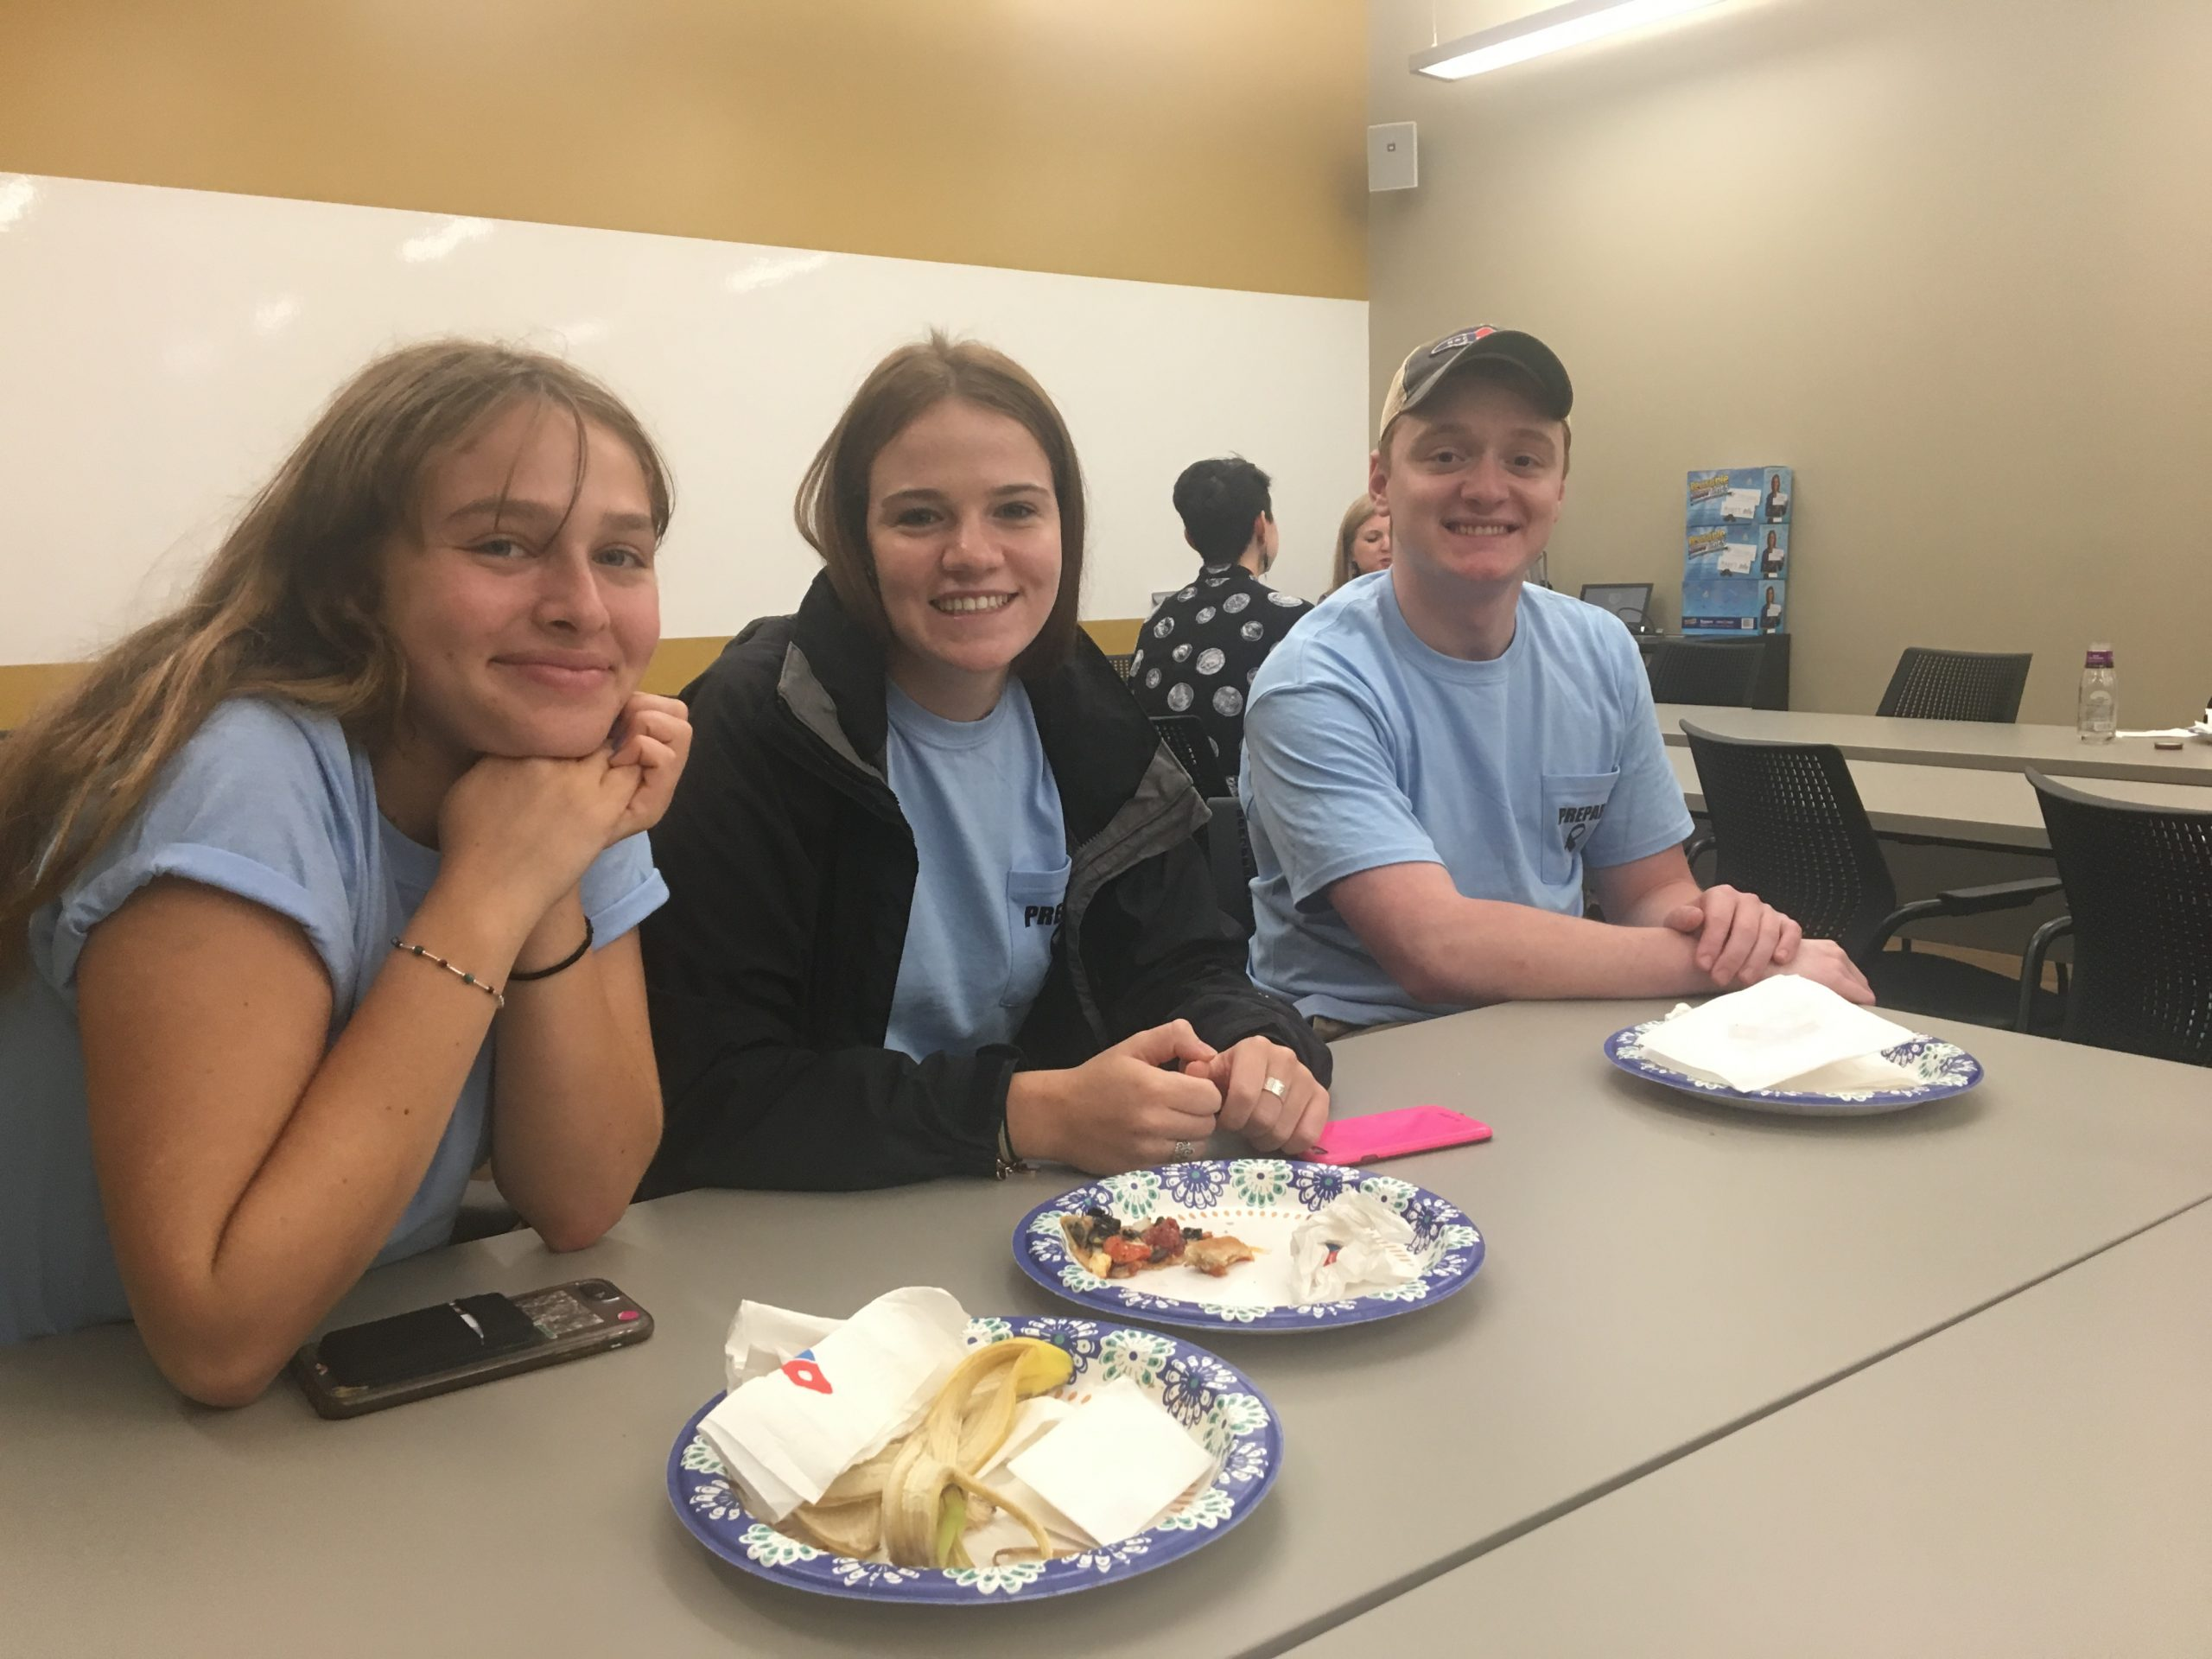 3 students smiling while sitting at a table